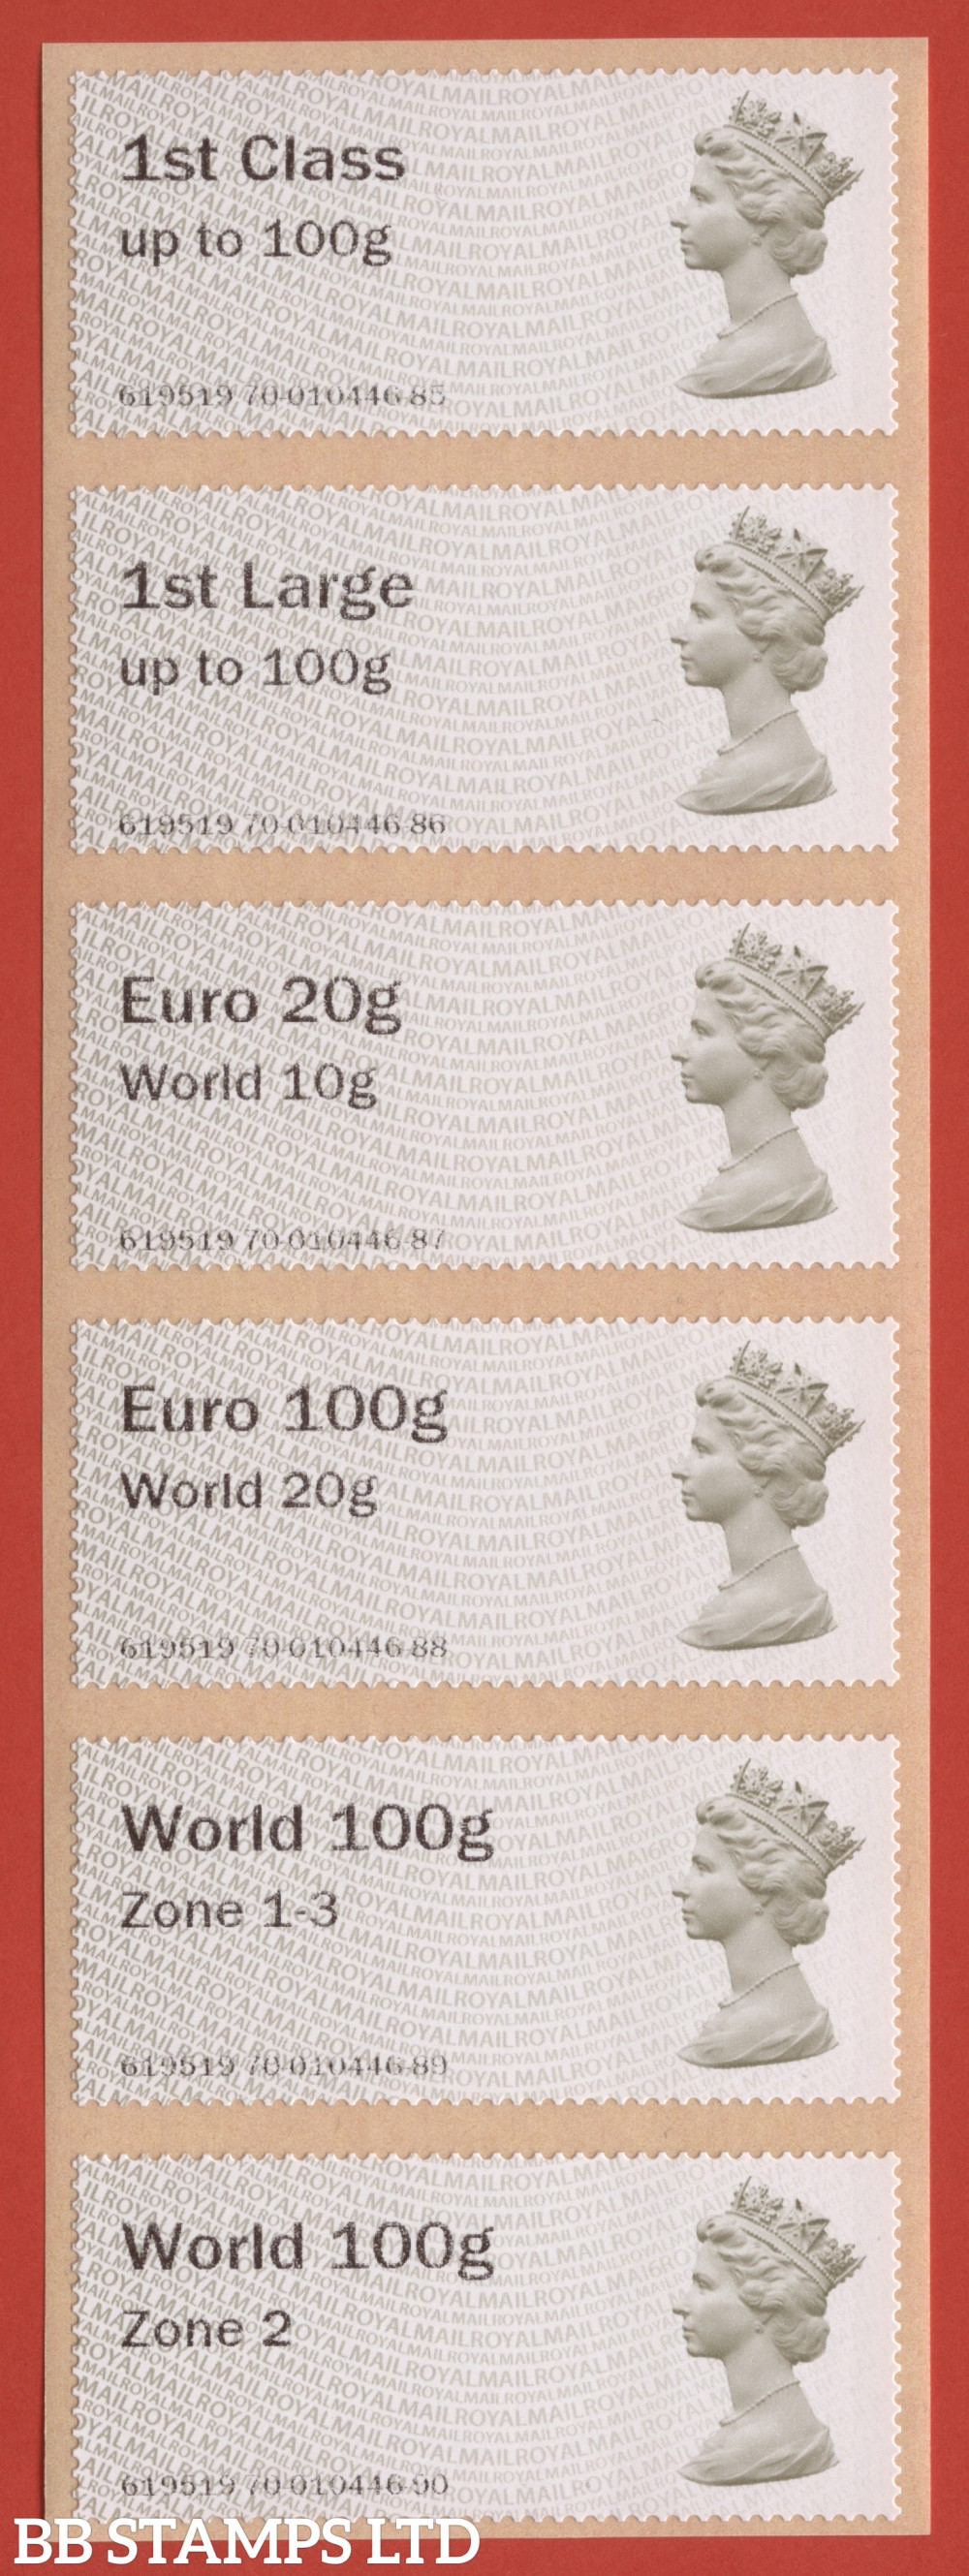 Machin (TIIA) set of 6 with new overseas tariff stamps as issued on 01 September 2020: 1st, 1stL, Euro 20g World 10g – and new tariff Euro 100g World 20g/World 100g Zone 1-3/World Zone 2 stamps: MA16 (BK29 P18)